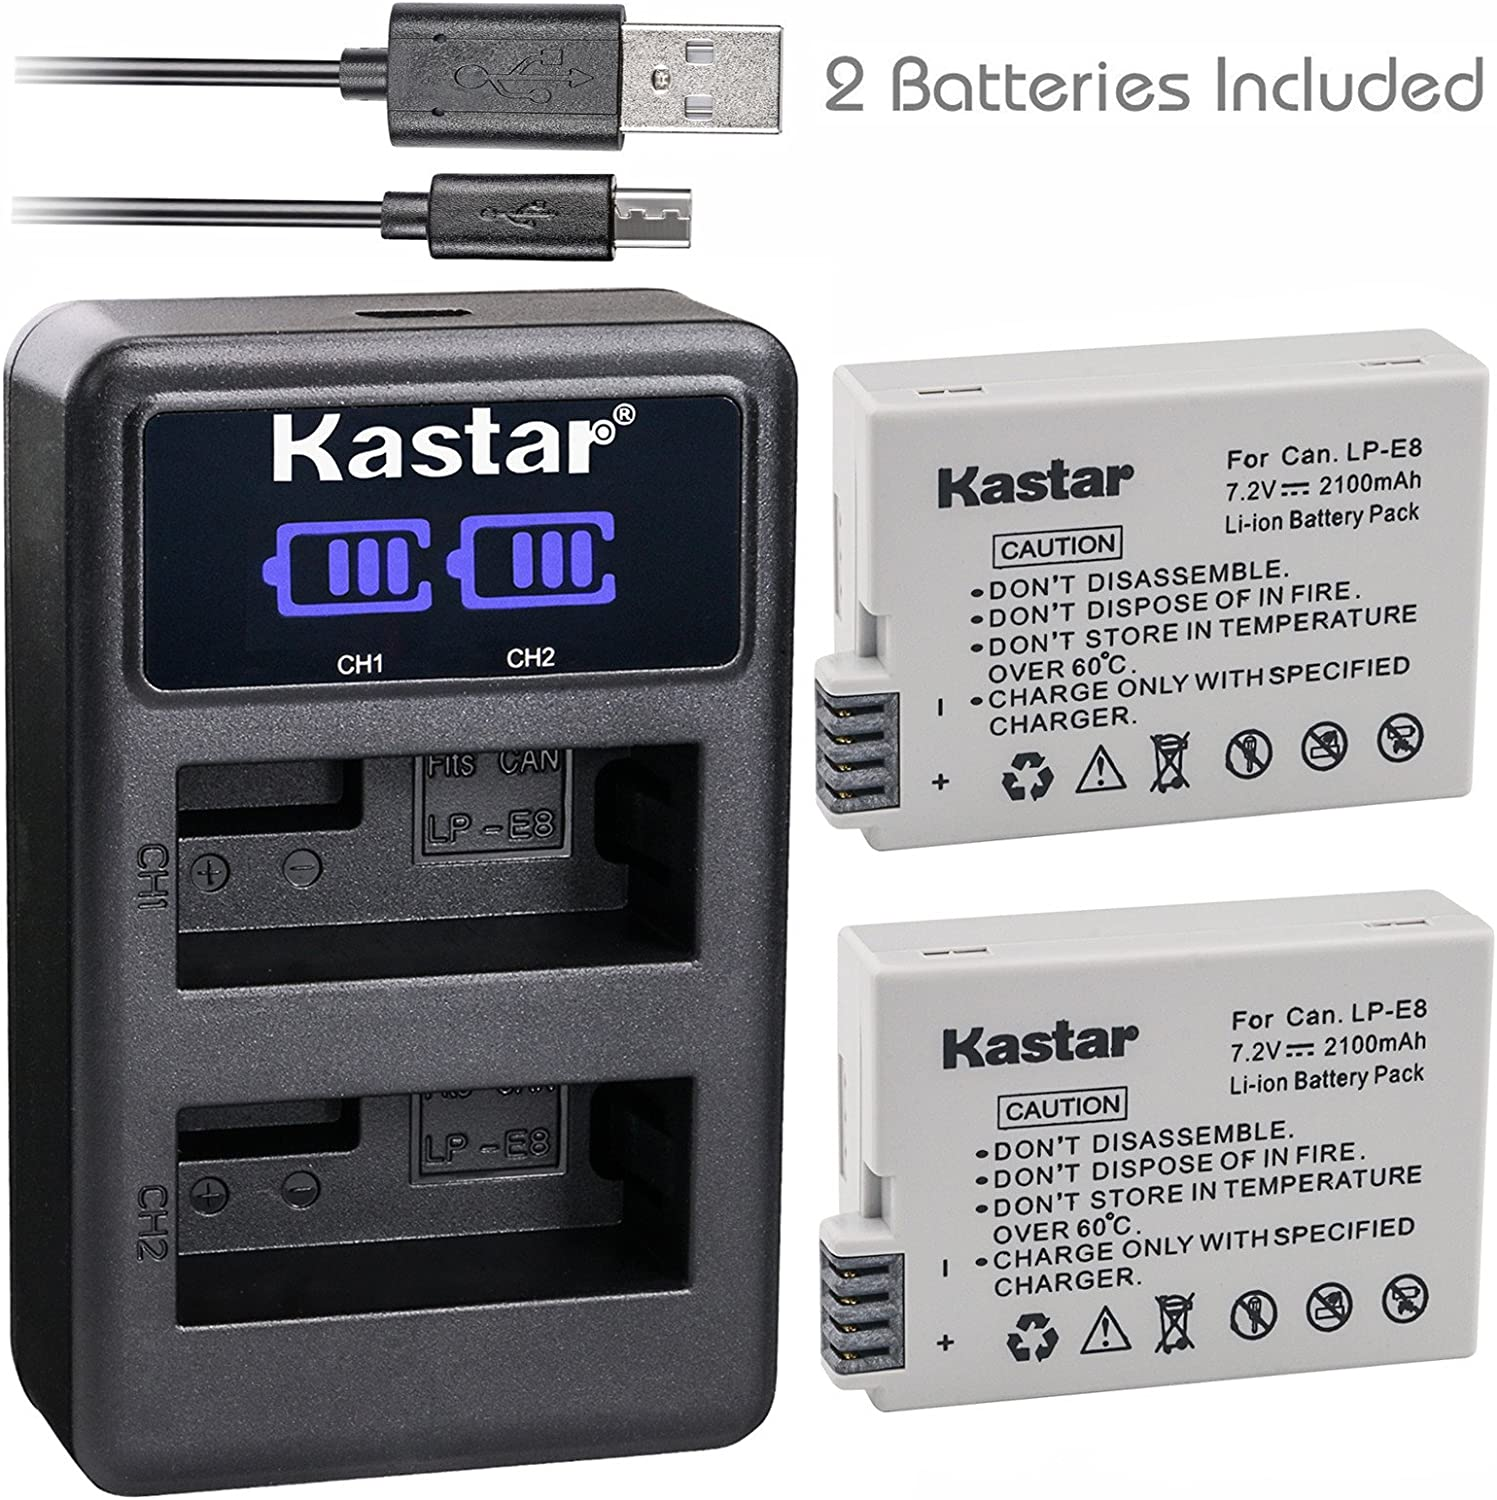 Kastar Battery x2 + Dual LCD Charger for Canon LP E8 LPE8 LC E8 and Canon EOS Rebel T2i T3i T4i T5i, Canon EOS 550D EOS 600D 650D EOS 700D, Canon EOS